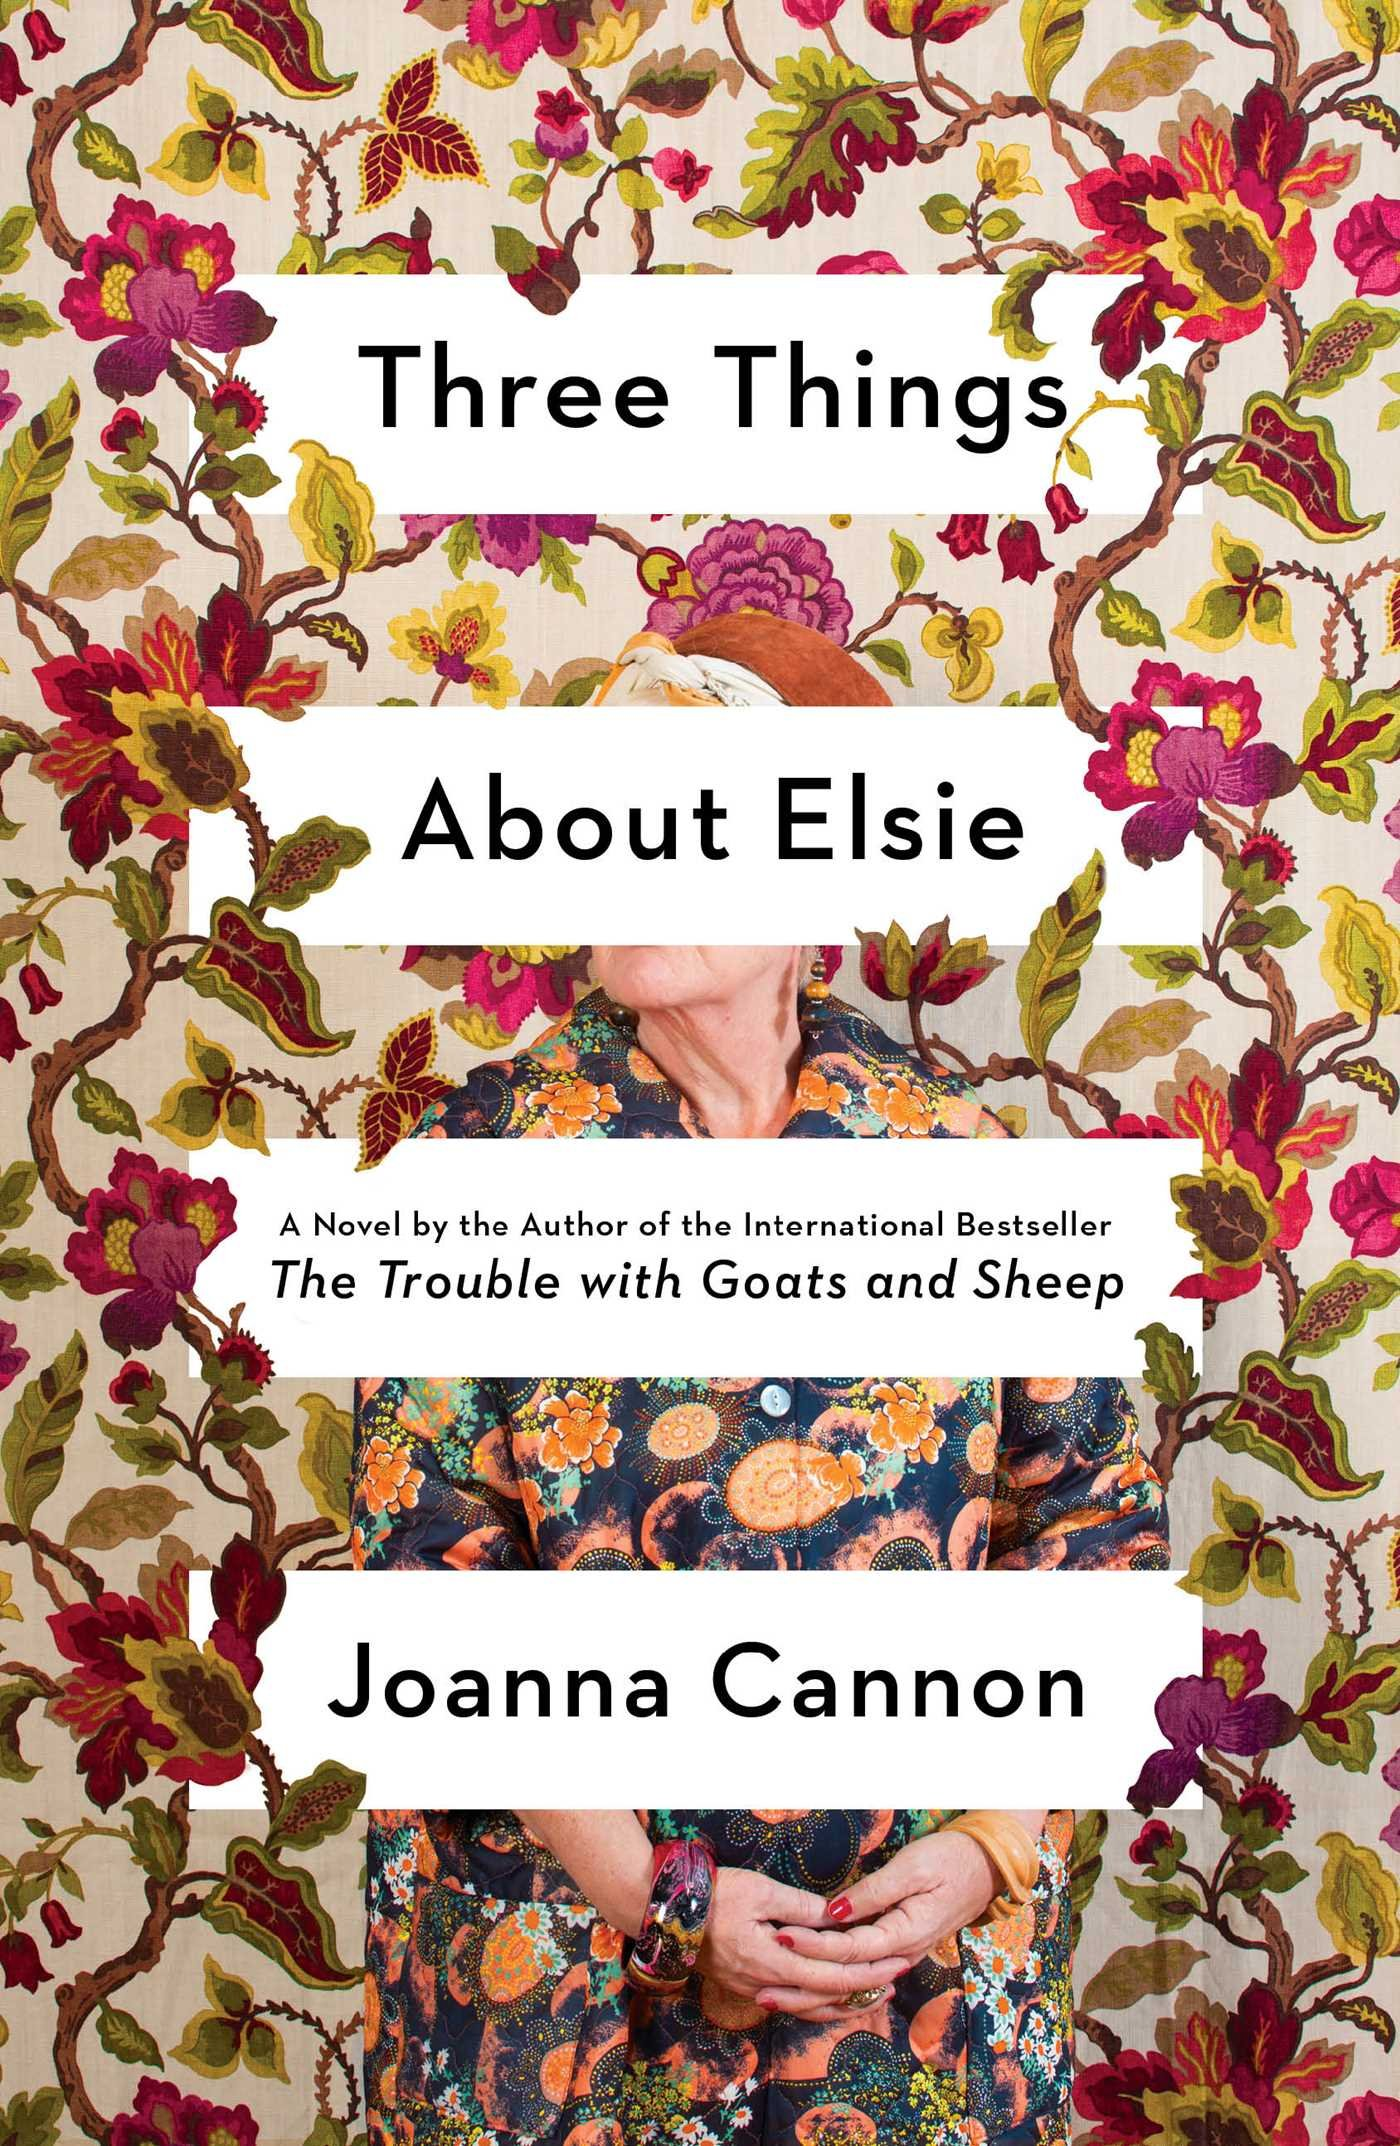 Three Things About Elsie Book Cover Illustration